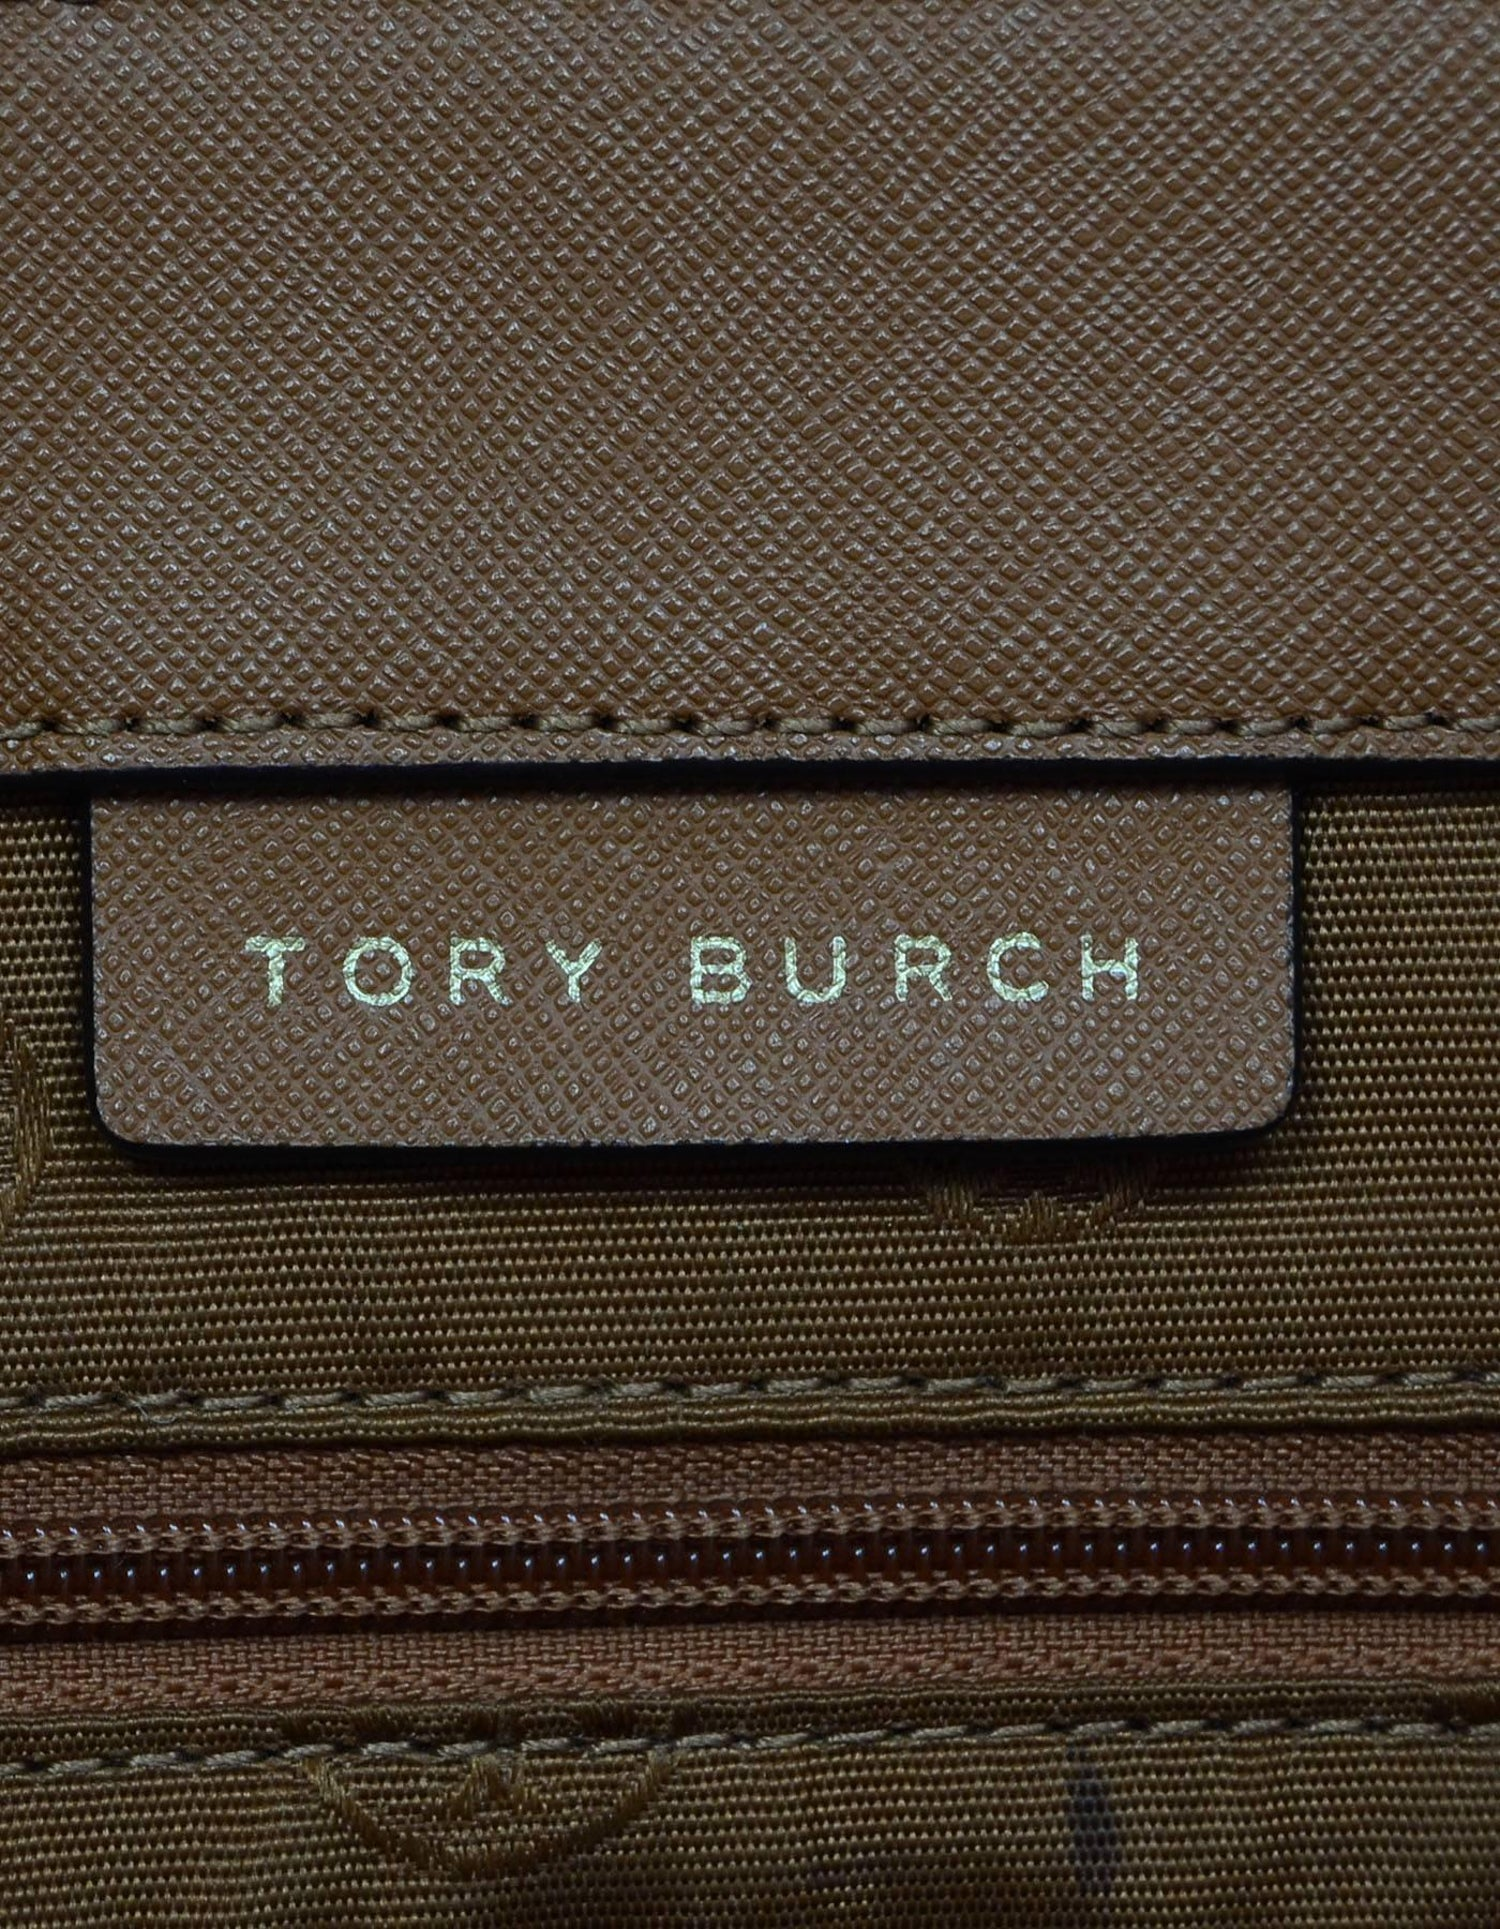 Tory Burch Tan Saffiano Small York Tote Bag For Sale At 1stdibs Large French Gray